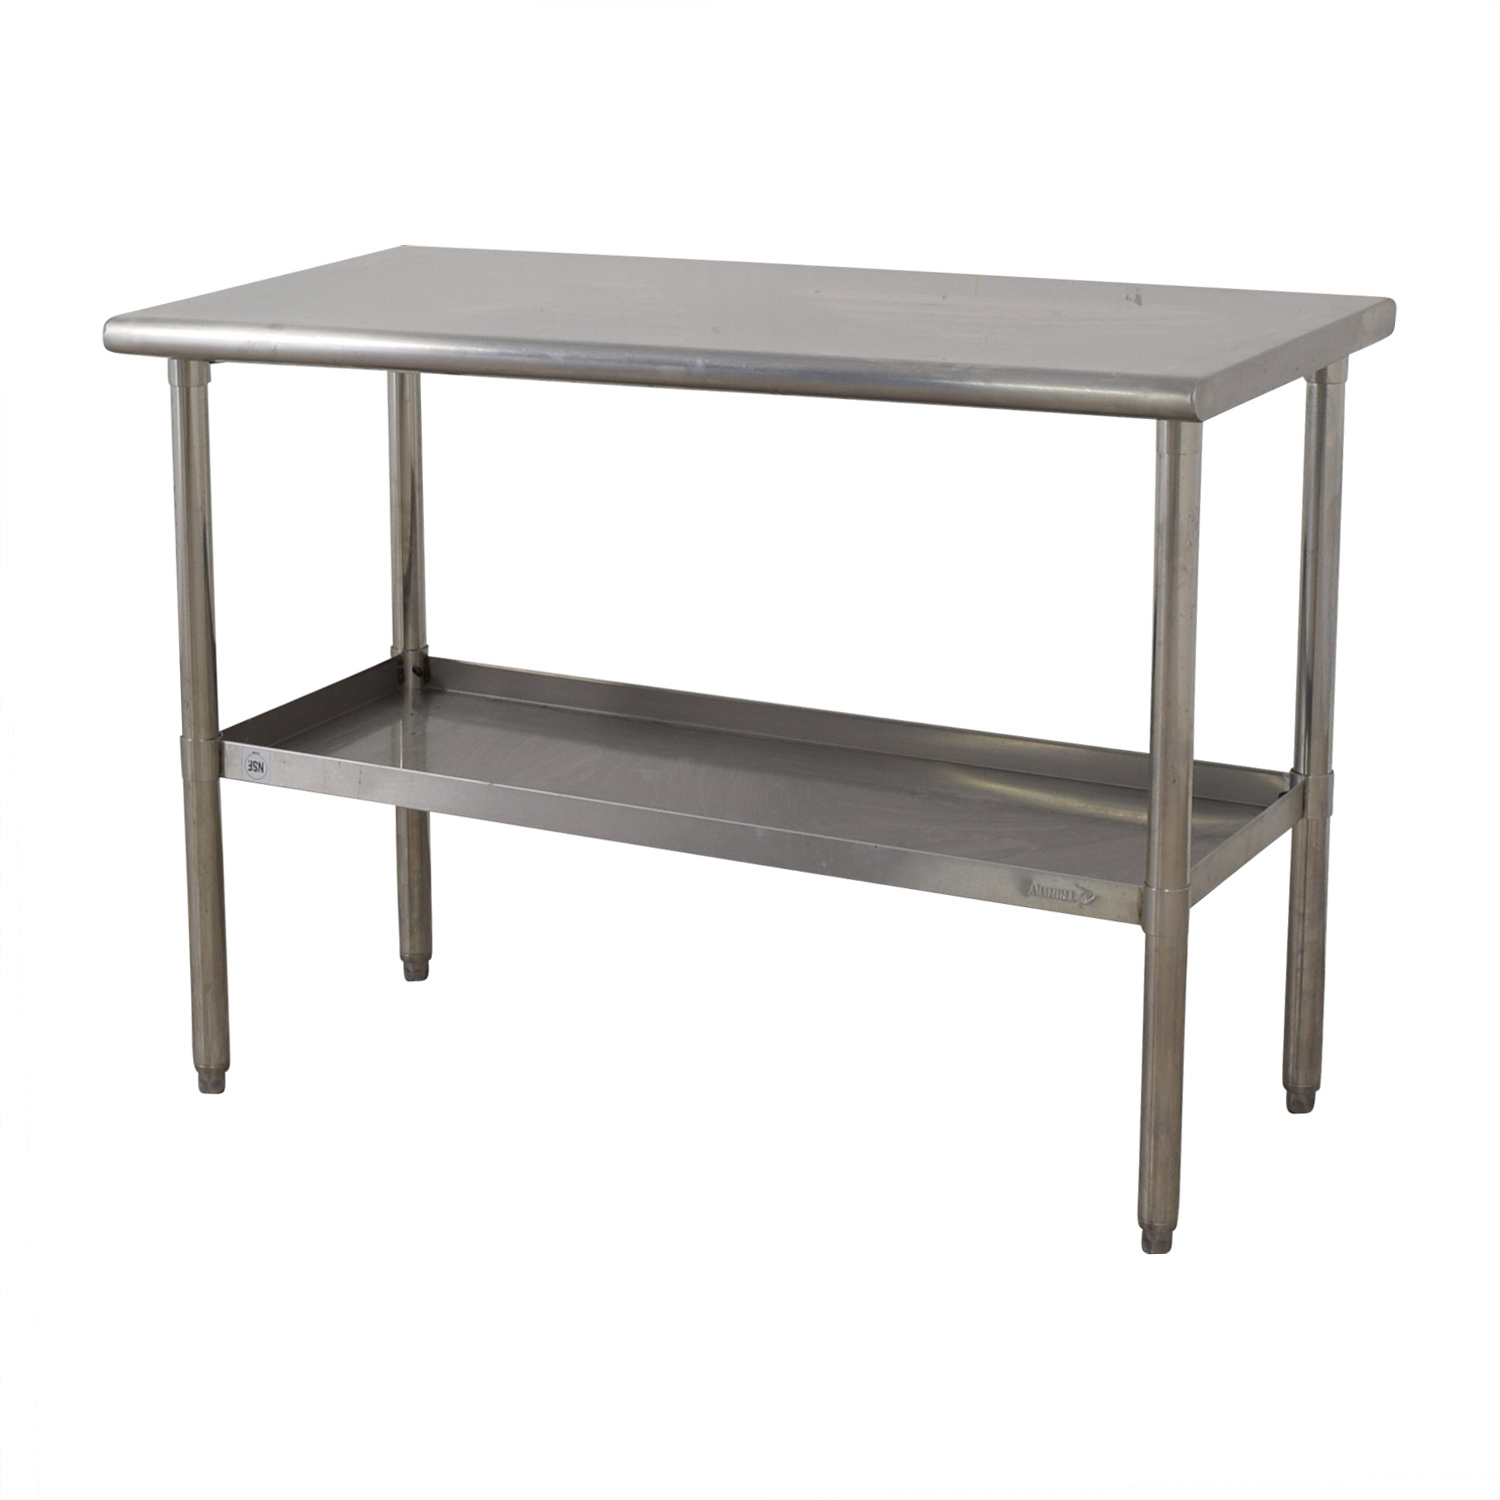 NSF Stainless Preparation Two-Tier Table used